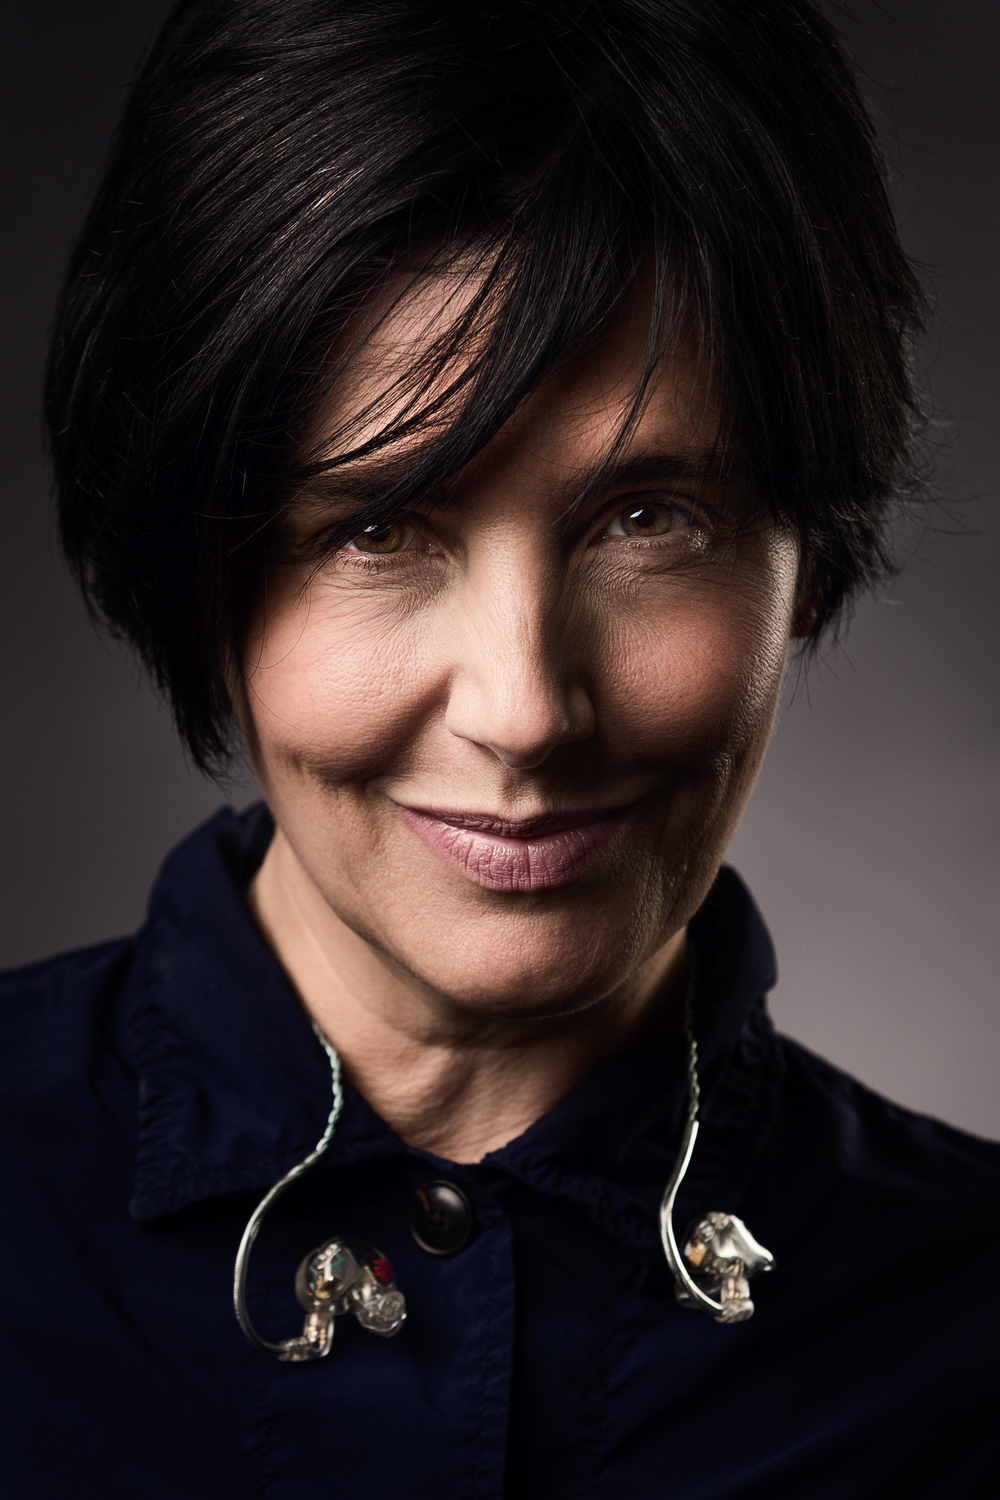 Sharleen Spiteri, Texas